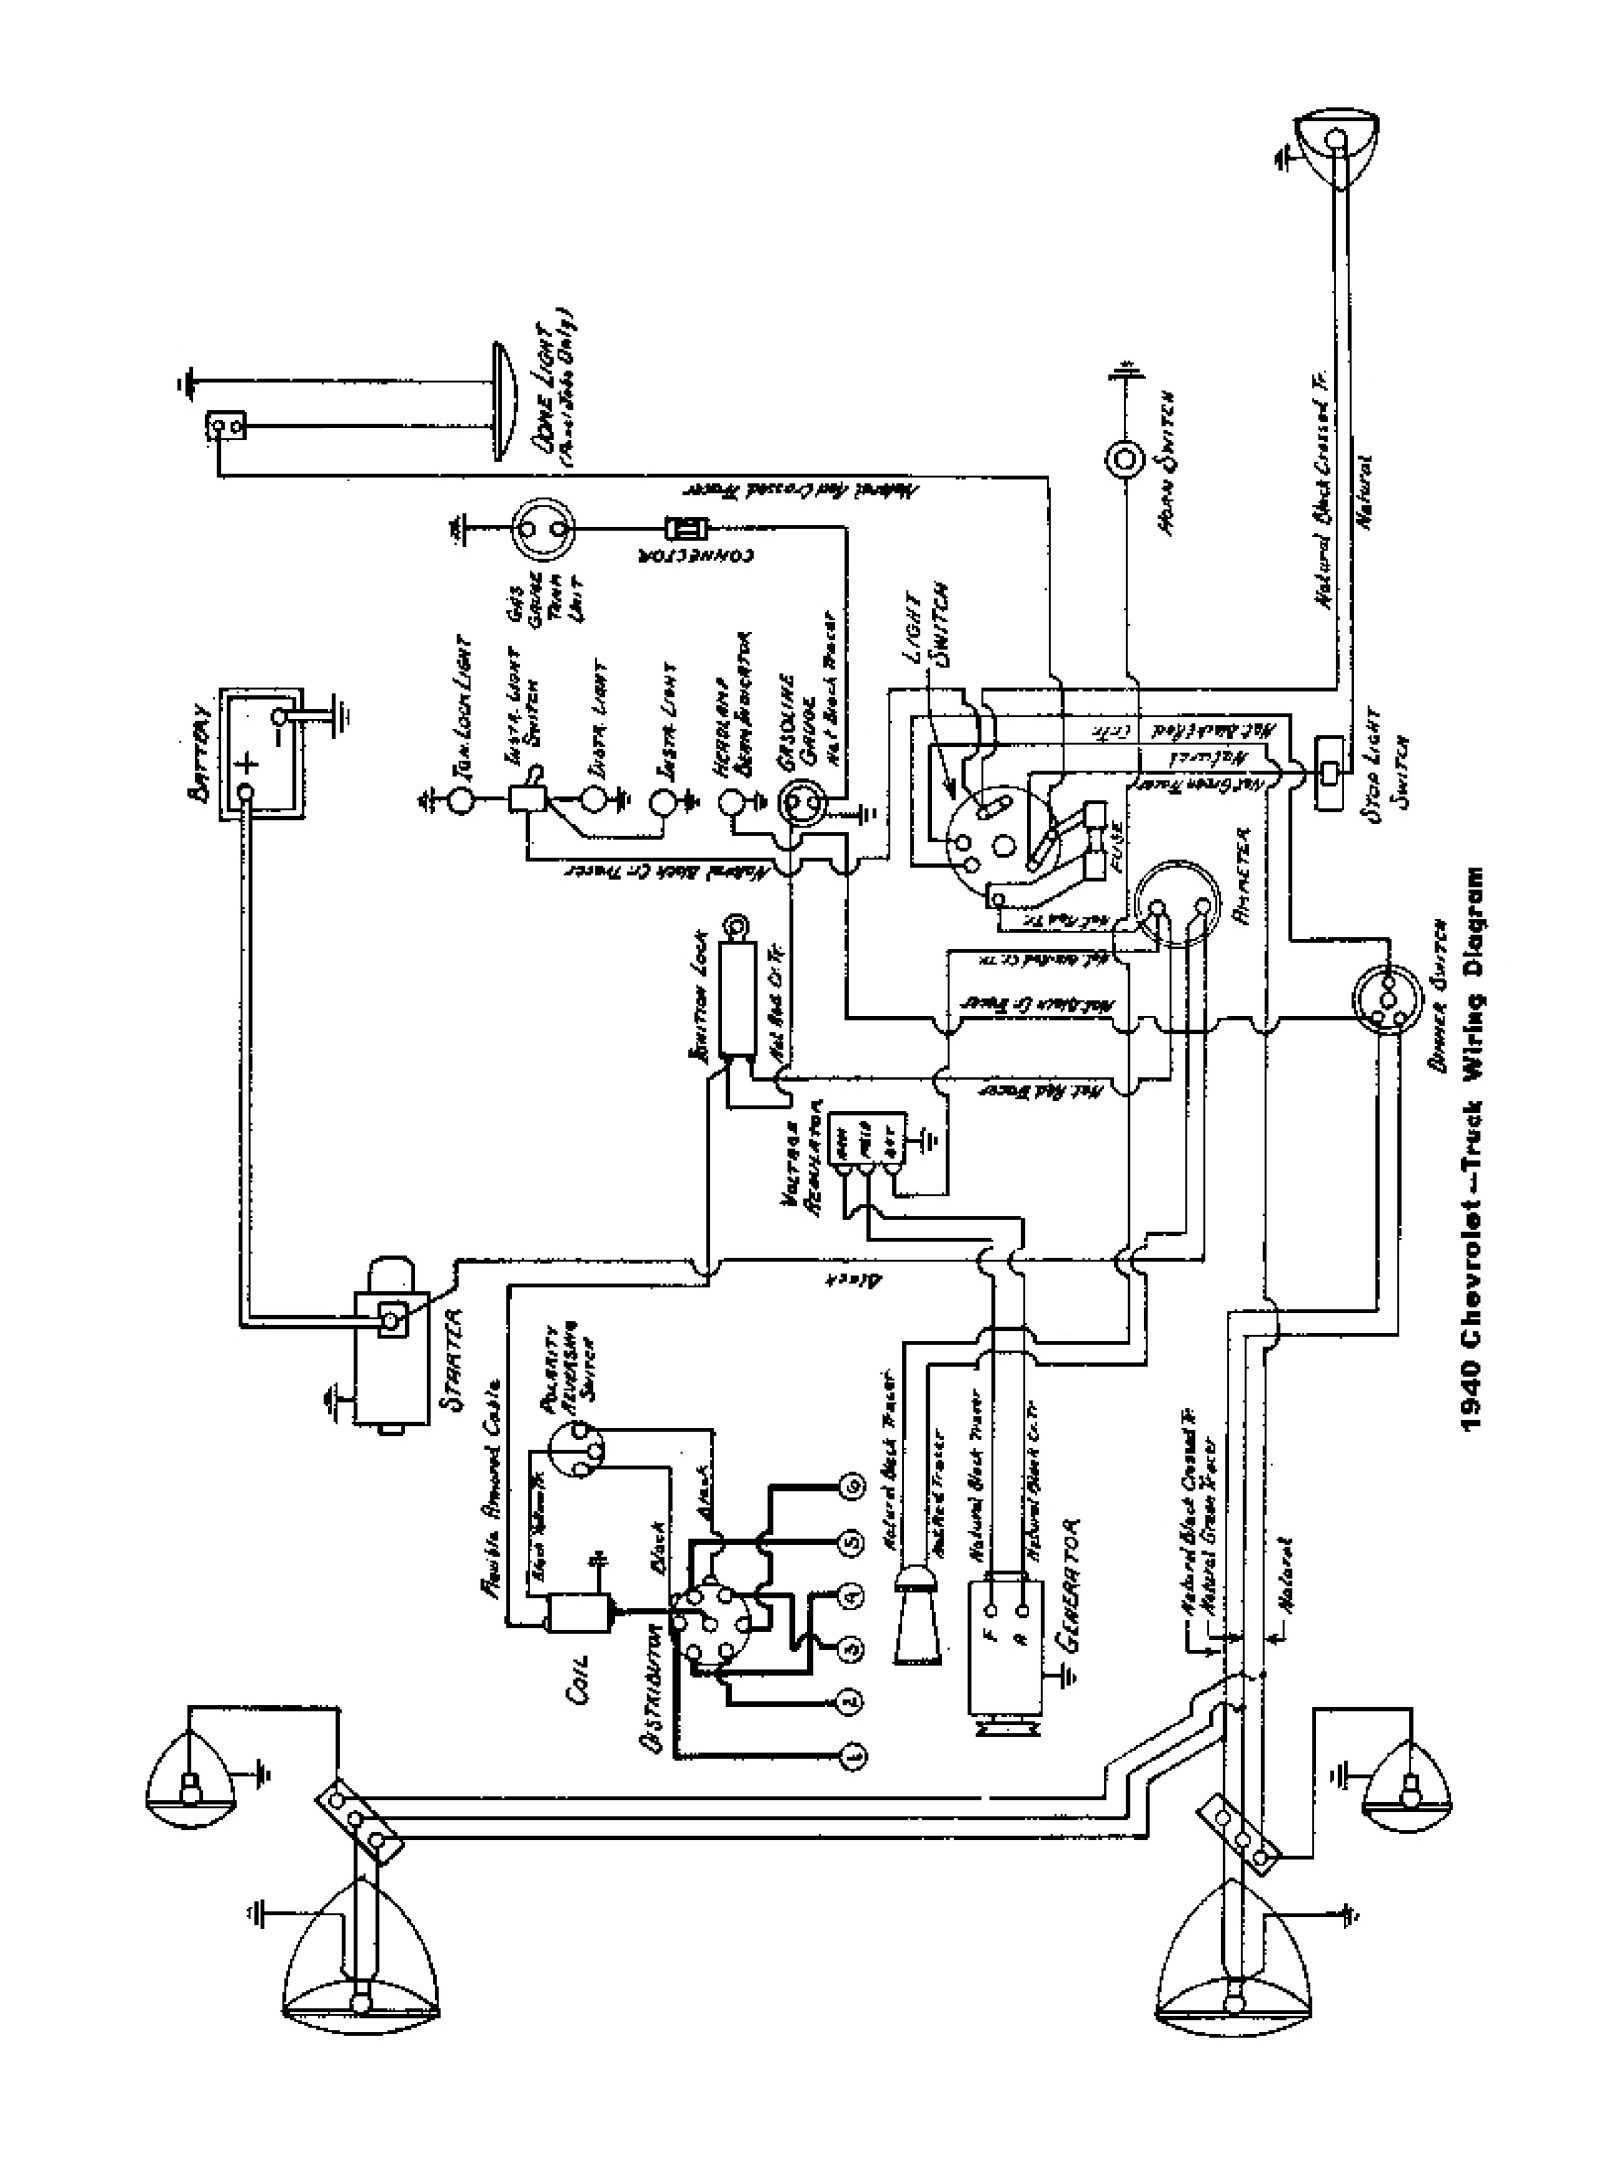 Free Wiring Diagram Chevy V8 Truck Auto Electrical Engine 2 Opel Zafira Emprendedorlink Unique Chevyruck 1965 8 Cylinder Chevrolet